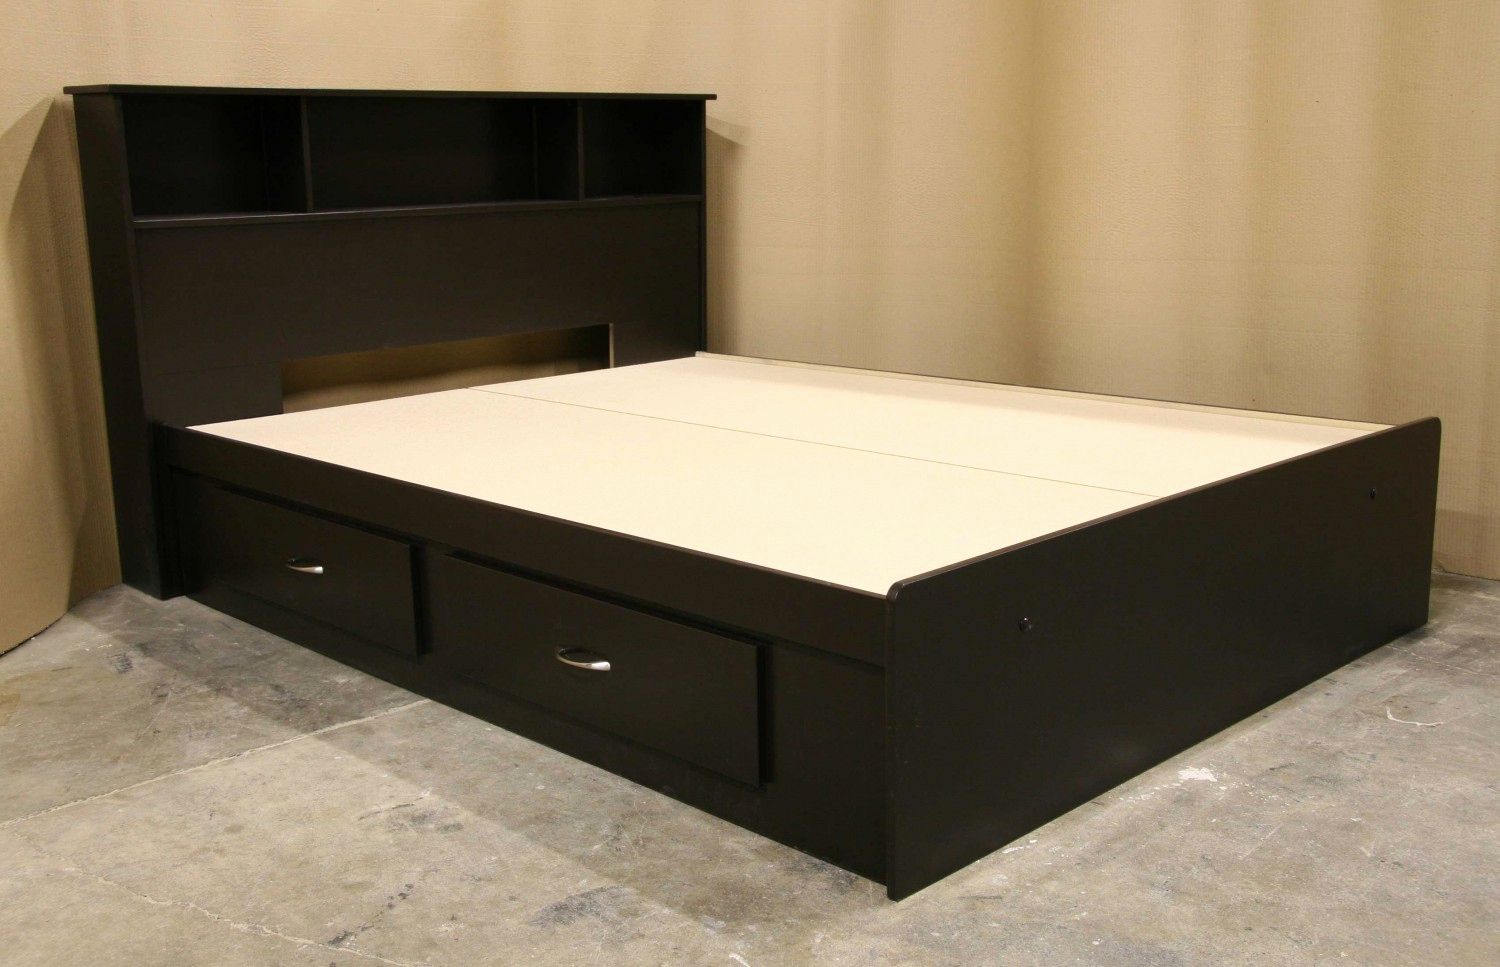 king size bed with storage drawers underneath queen size beds with storage drawers underneath new full size FNYPQYM